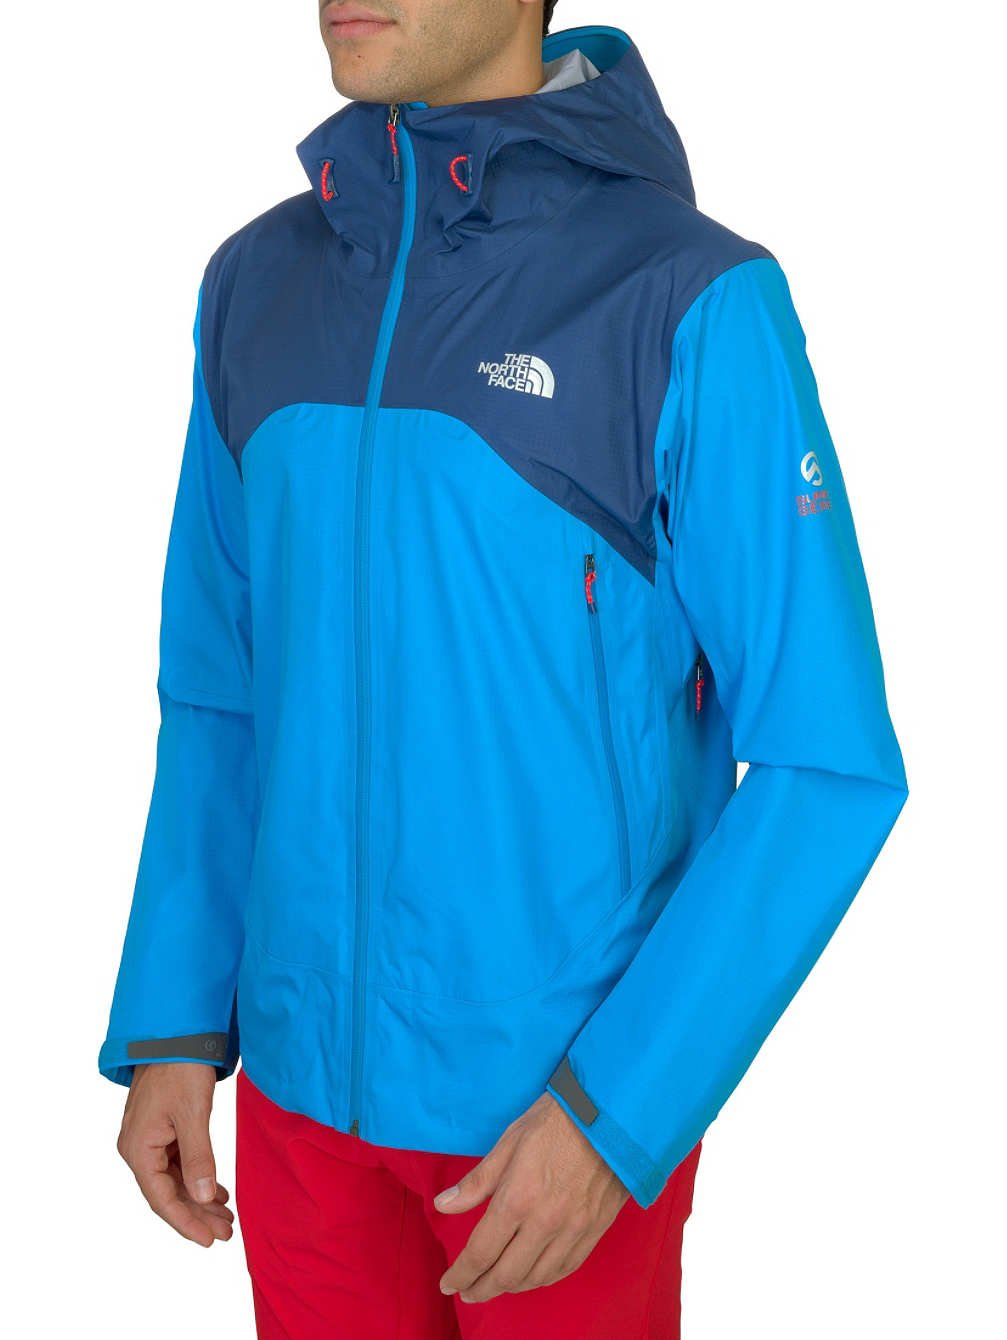 North Face Alpine Project Jacket Men, blue – blau, jetzt kaufen